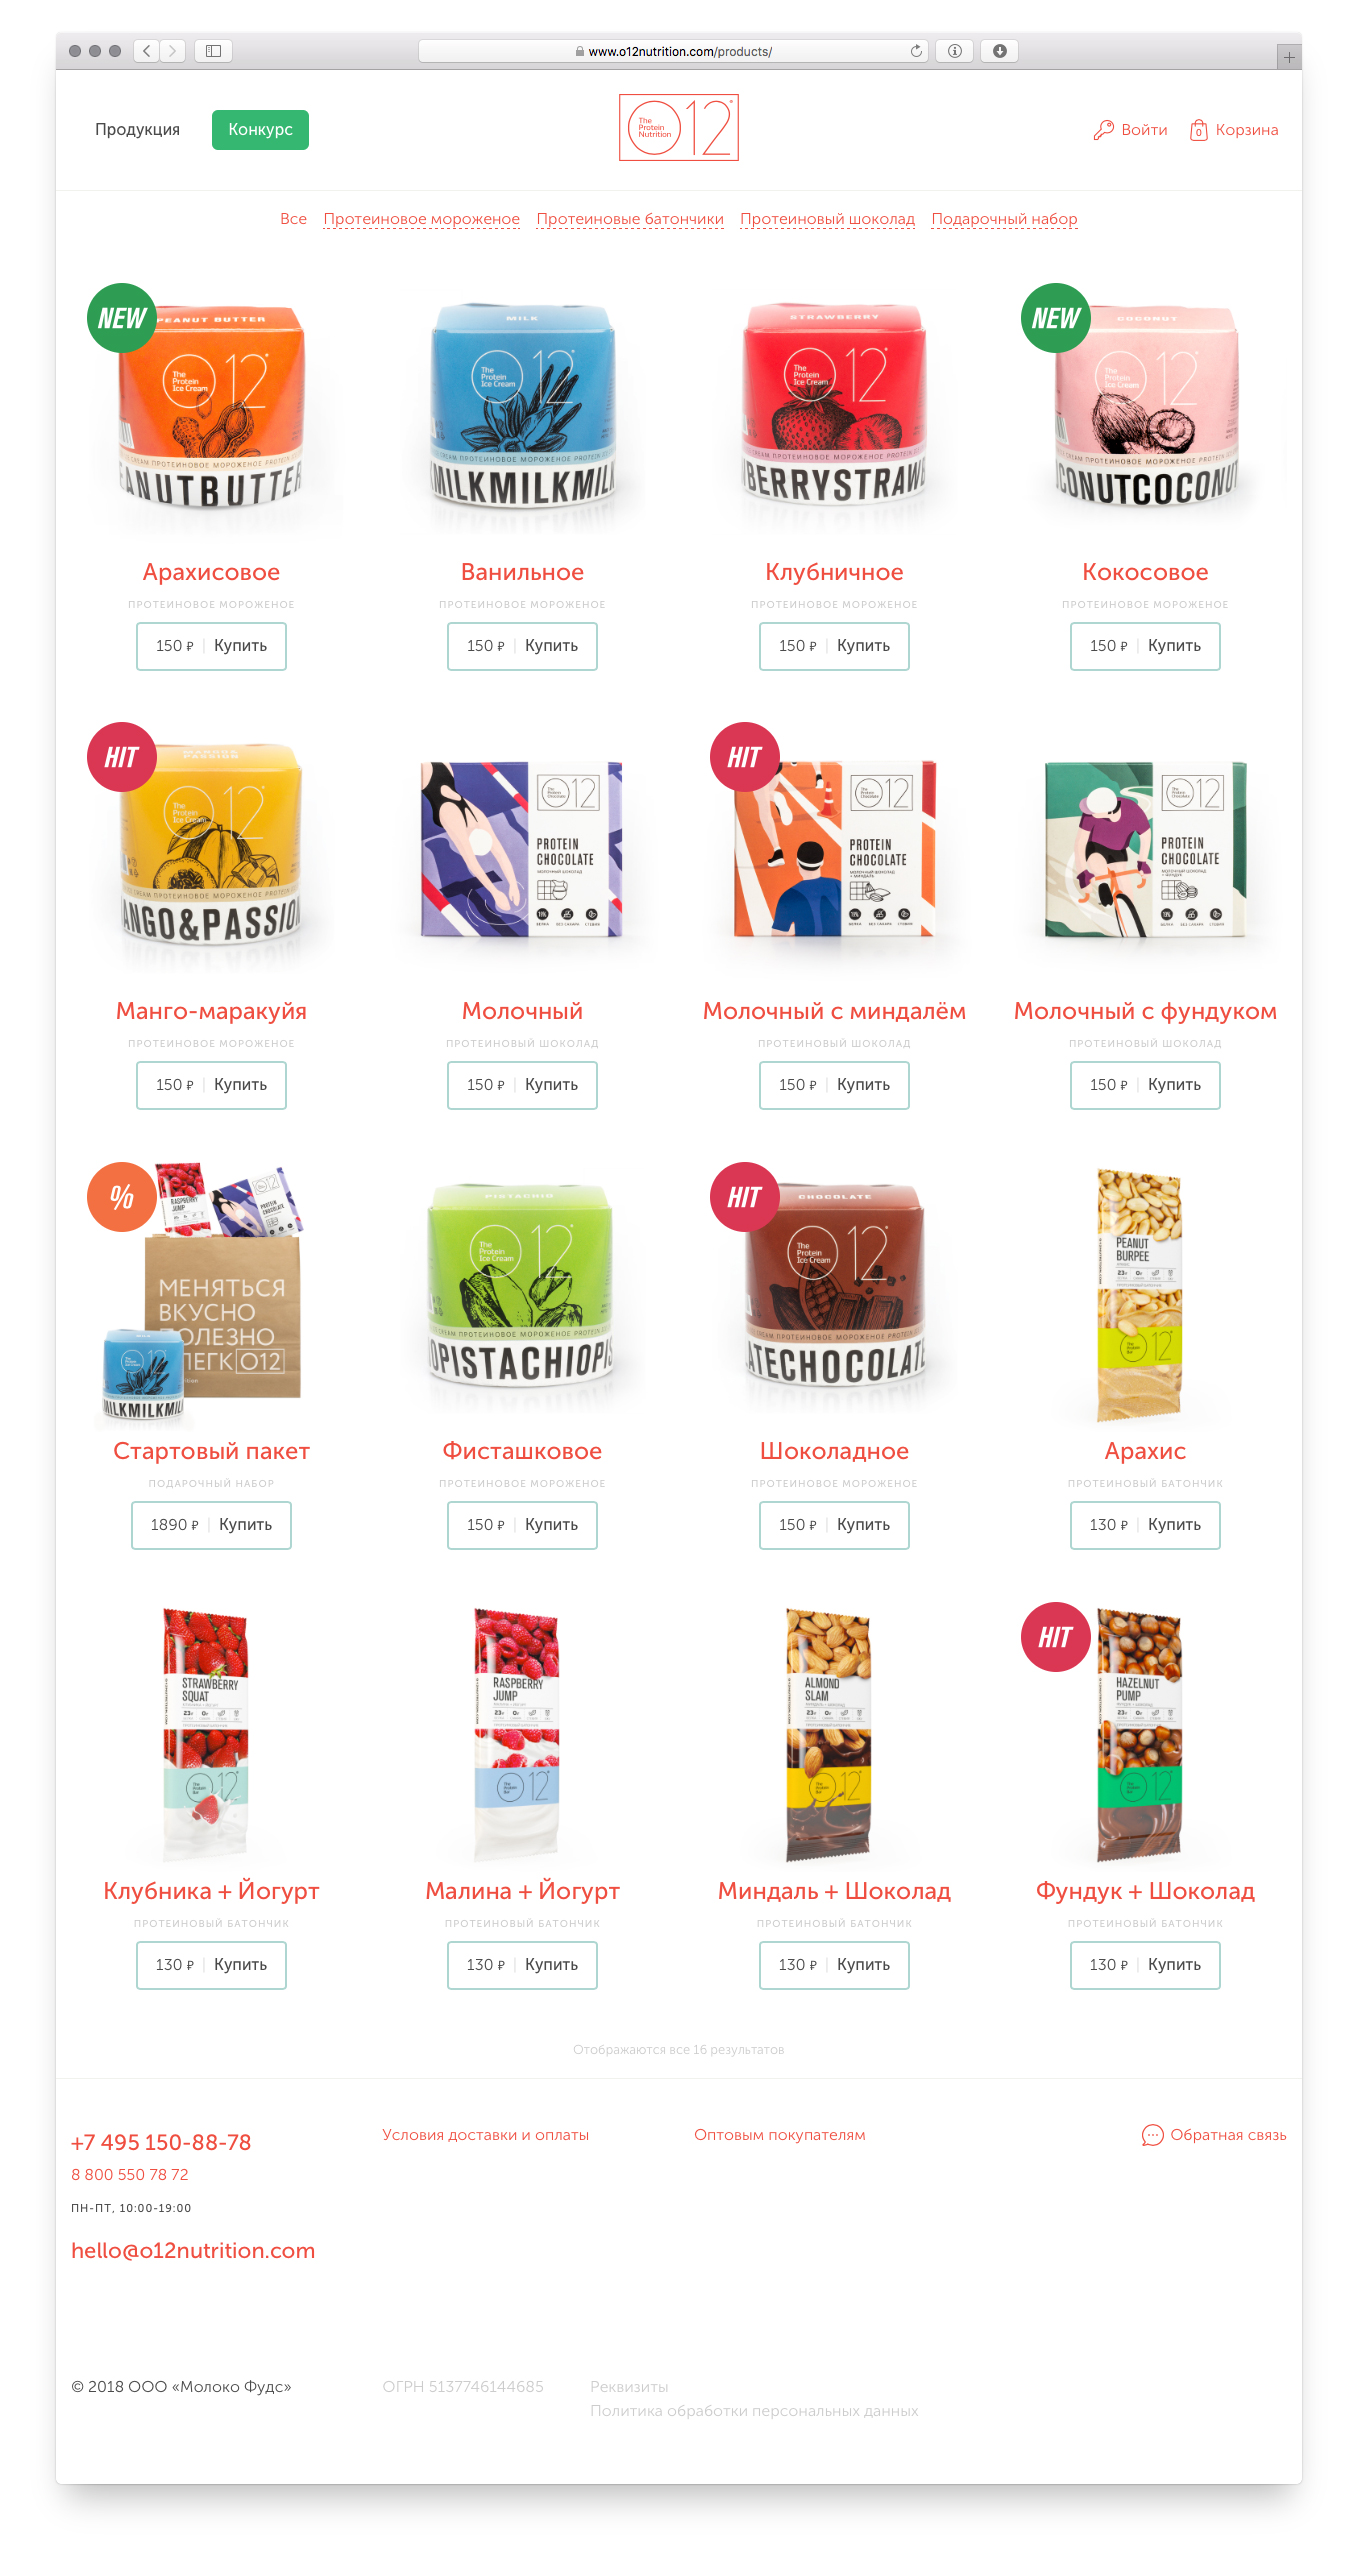 justbenice-o12nutrition-store-products.jpg